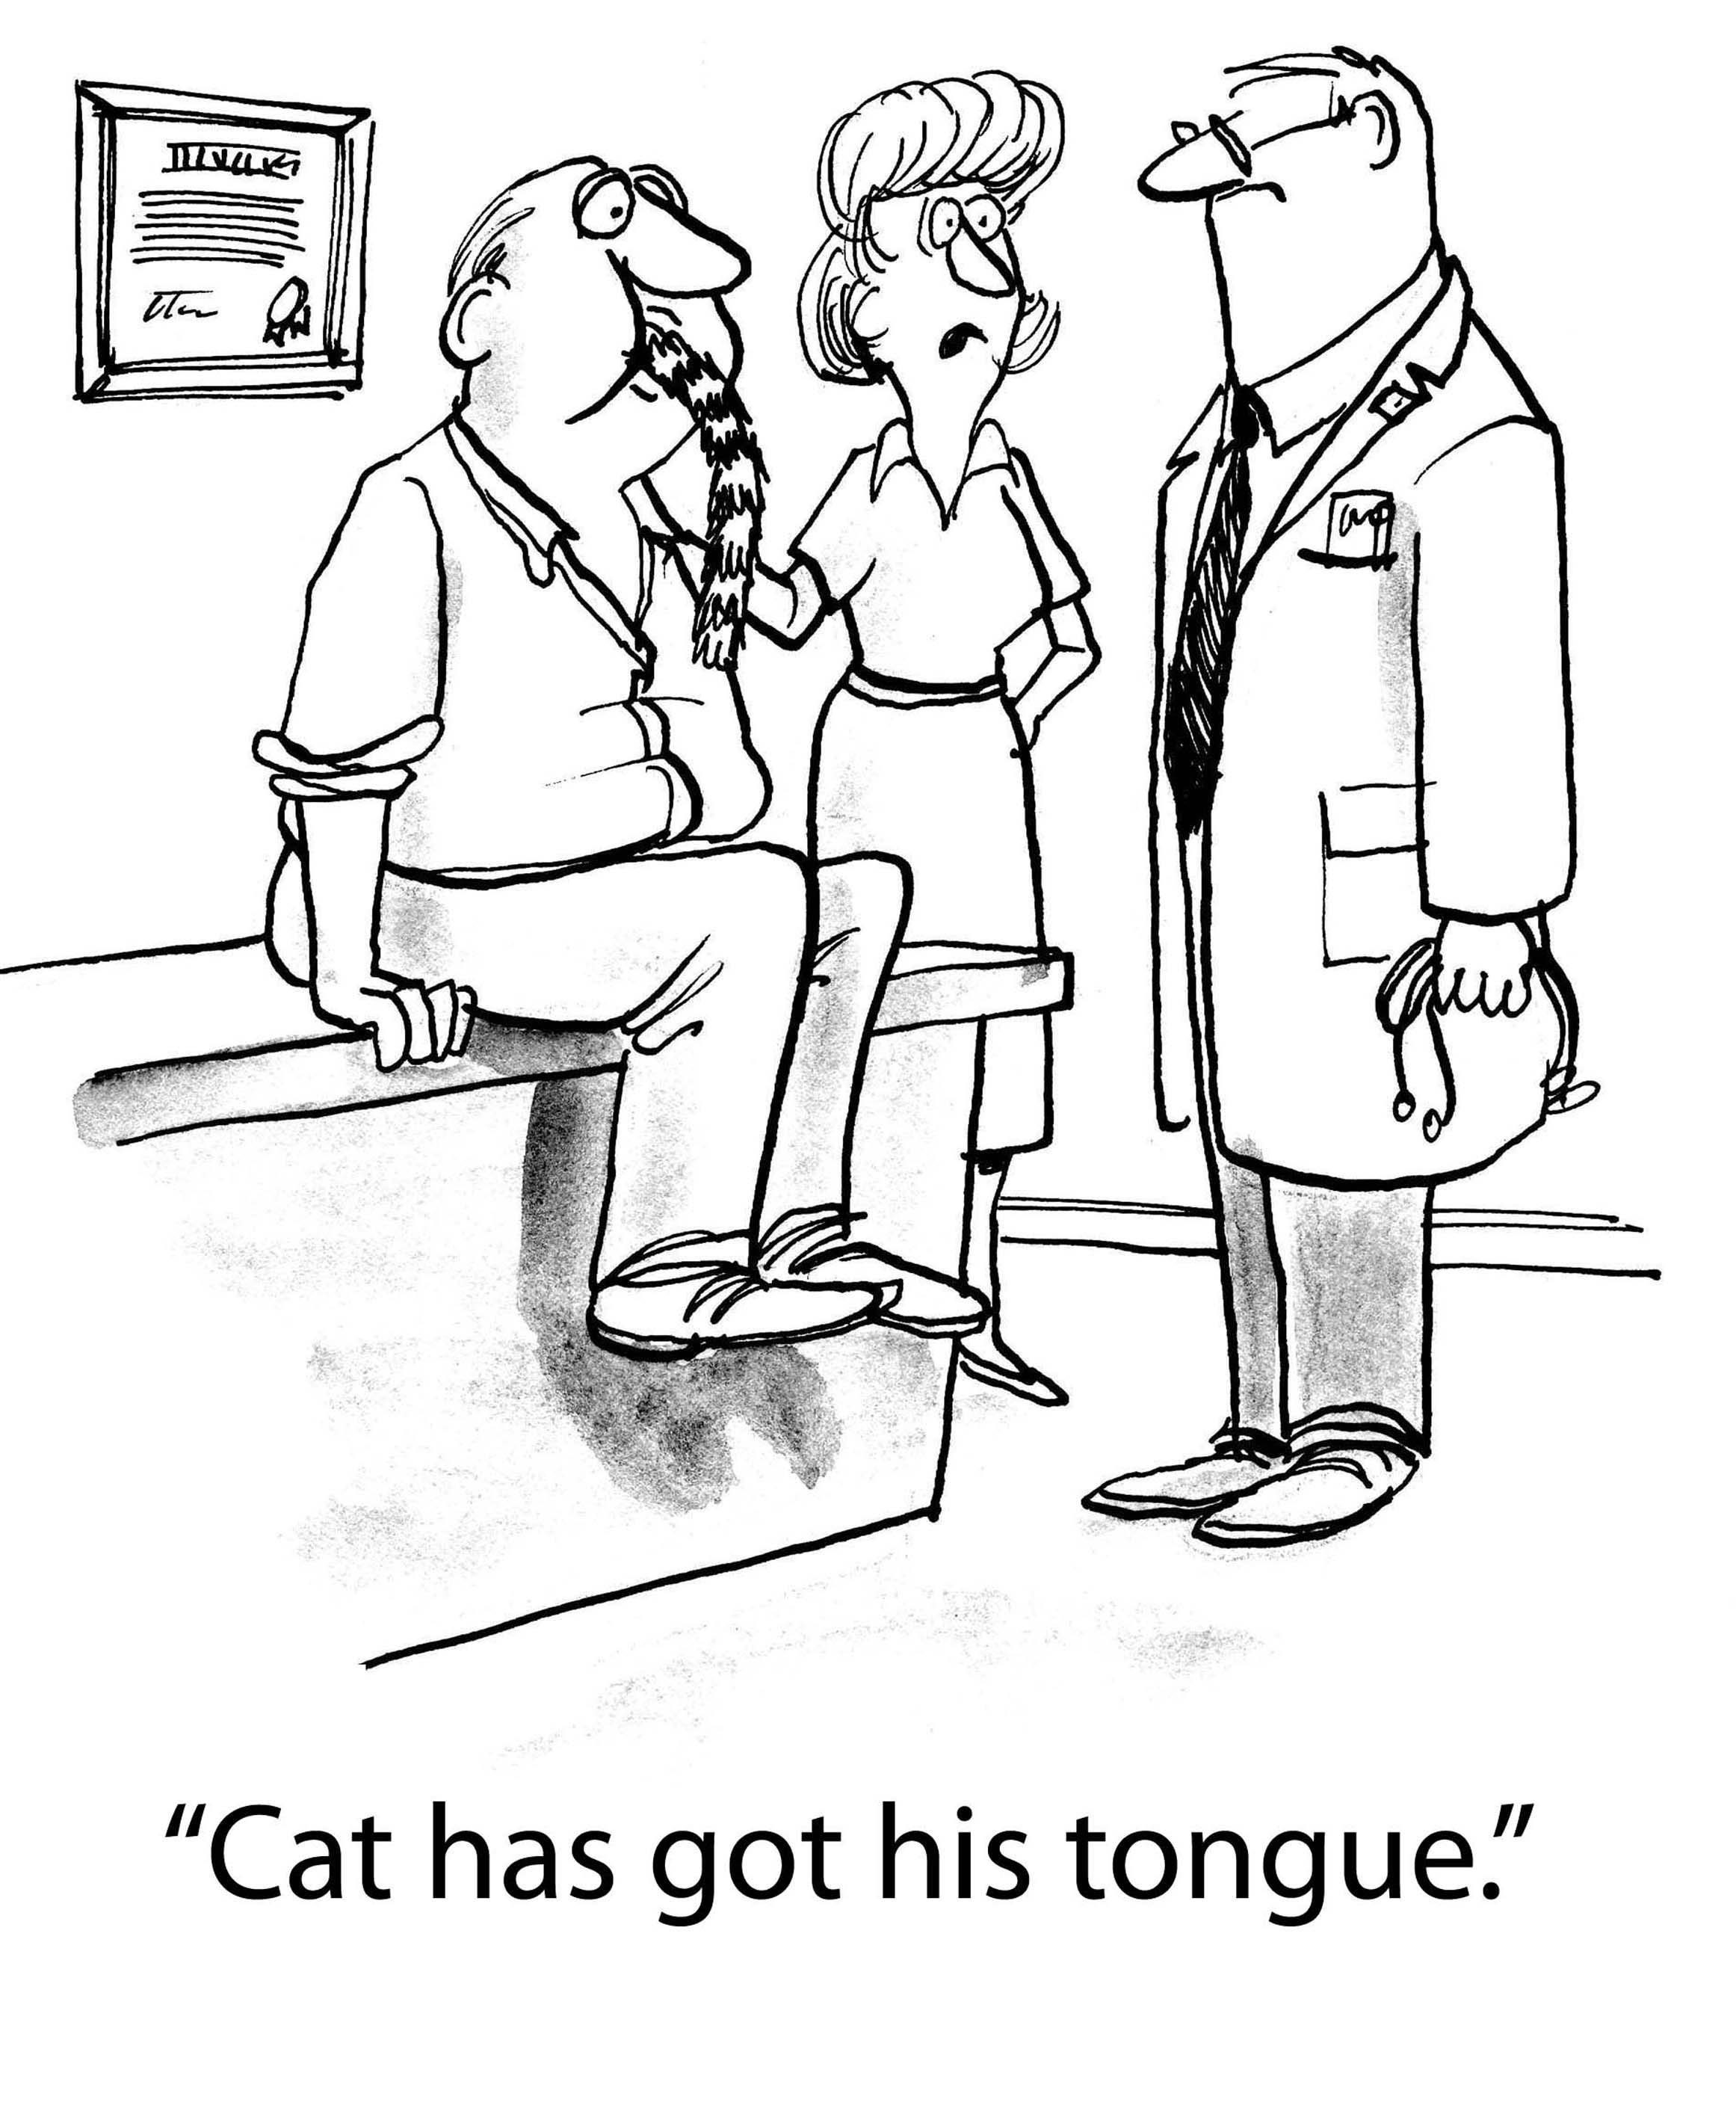 """Man is at doctor's office and wife says, """"Cat has got his tongue""""."""